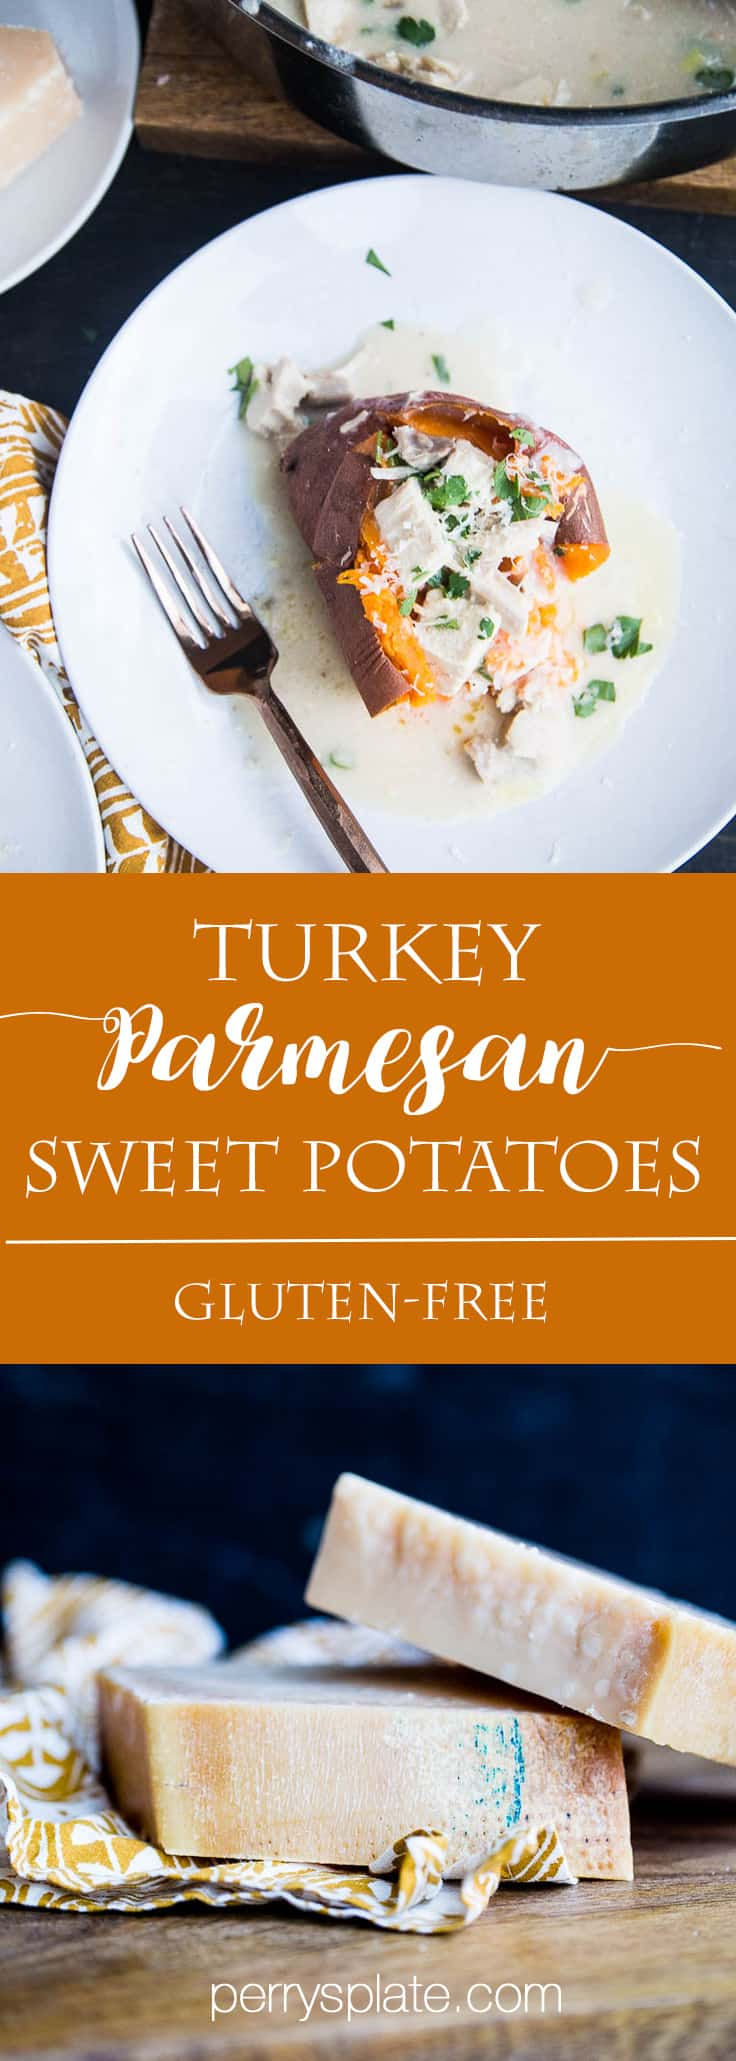 Turkey Parmesan Stuffed Sweet Potatoes | turkey recipes | sweet potato recipes | easy weeknight recipes | gluten-free recipes | perrysplate.com